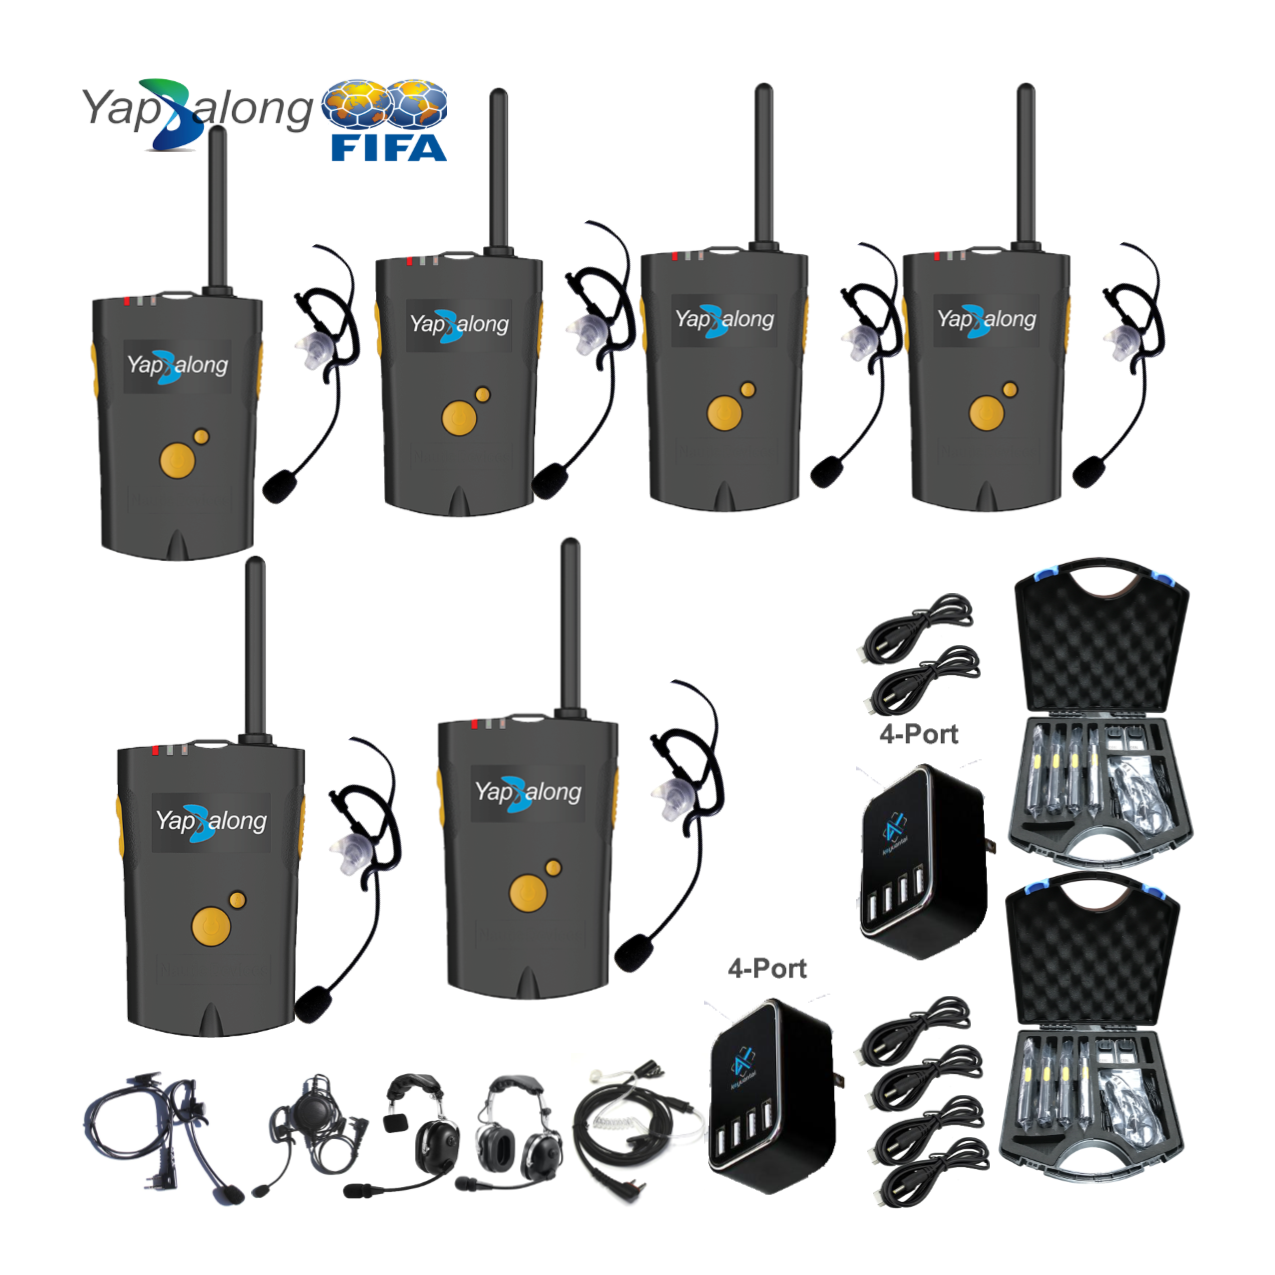 Yapalong 4000 (6-User) Complete Set Communications & IFB Intercom Systems